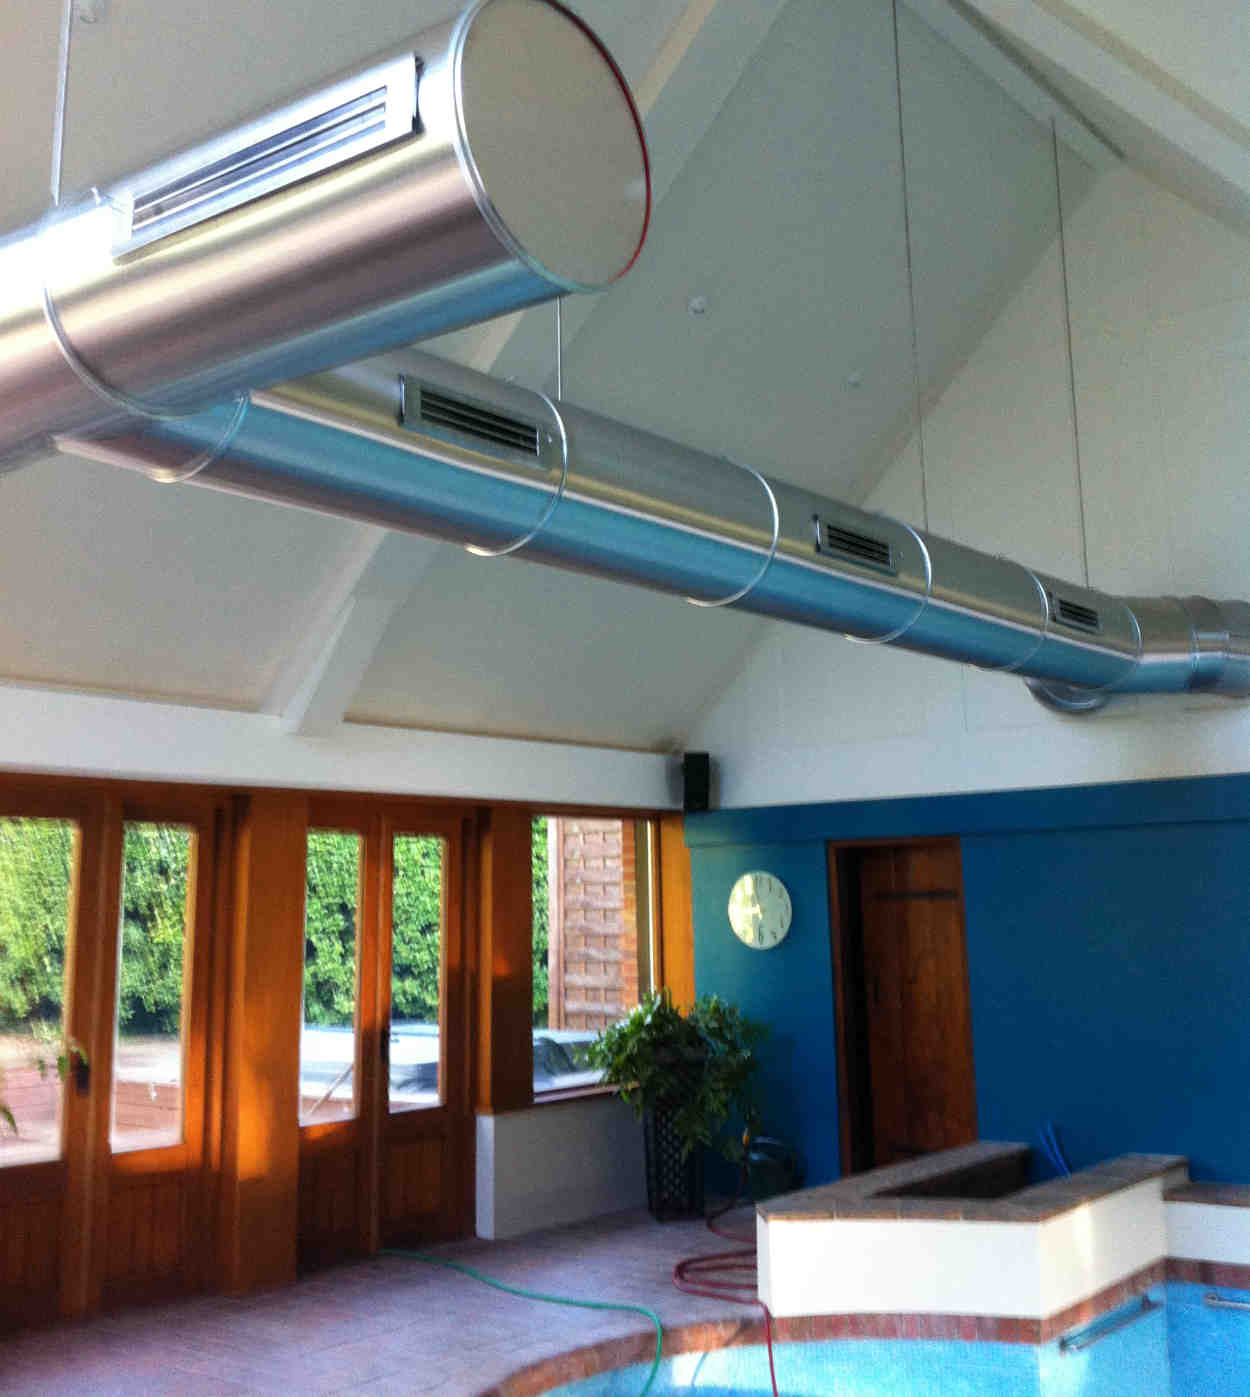 Case Study: Ventilation System for a Domestic Swimming Pool